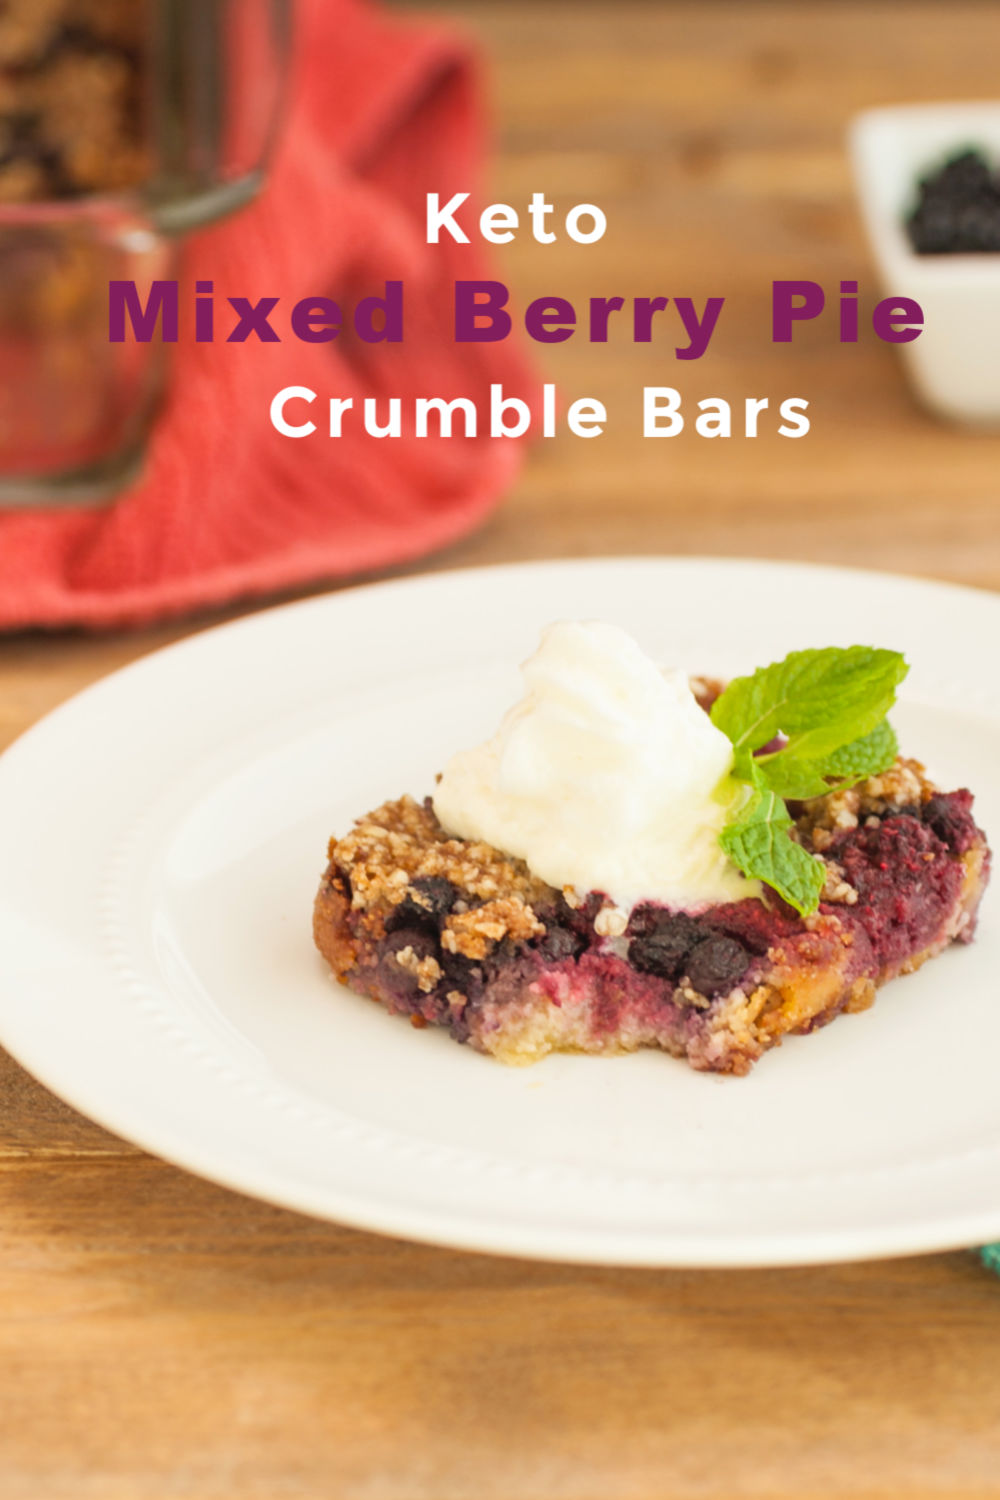 Mixed Berry Pie Crumble Bars Keto & Low Carb